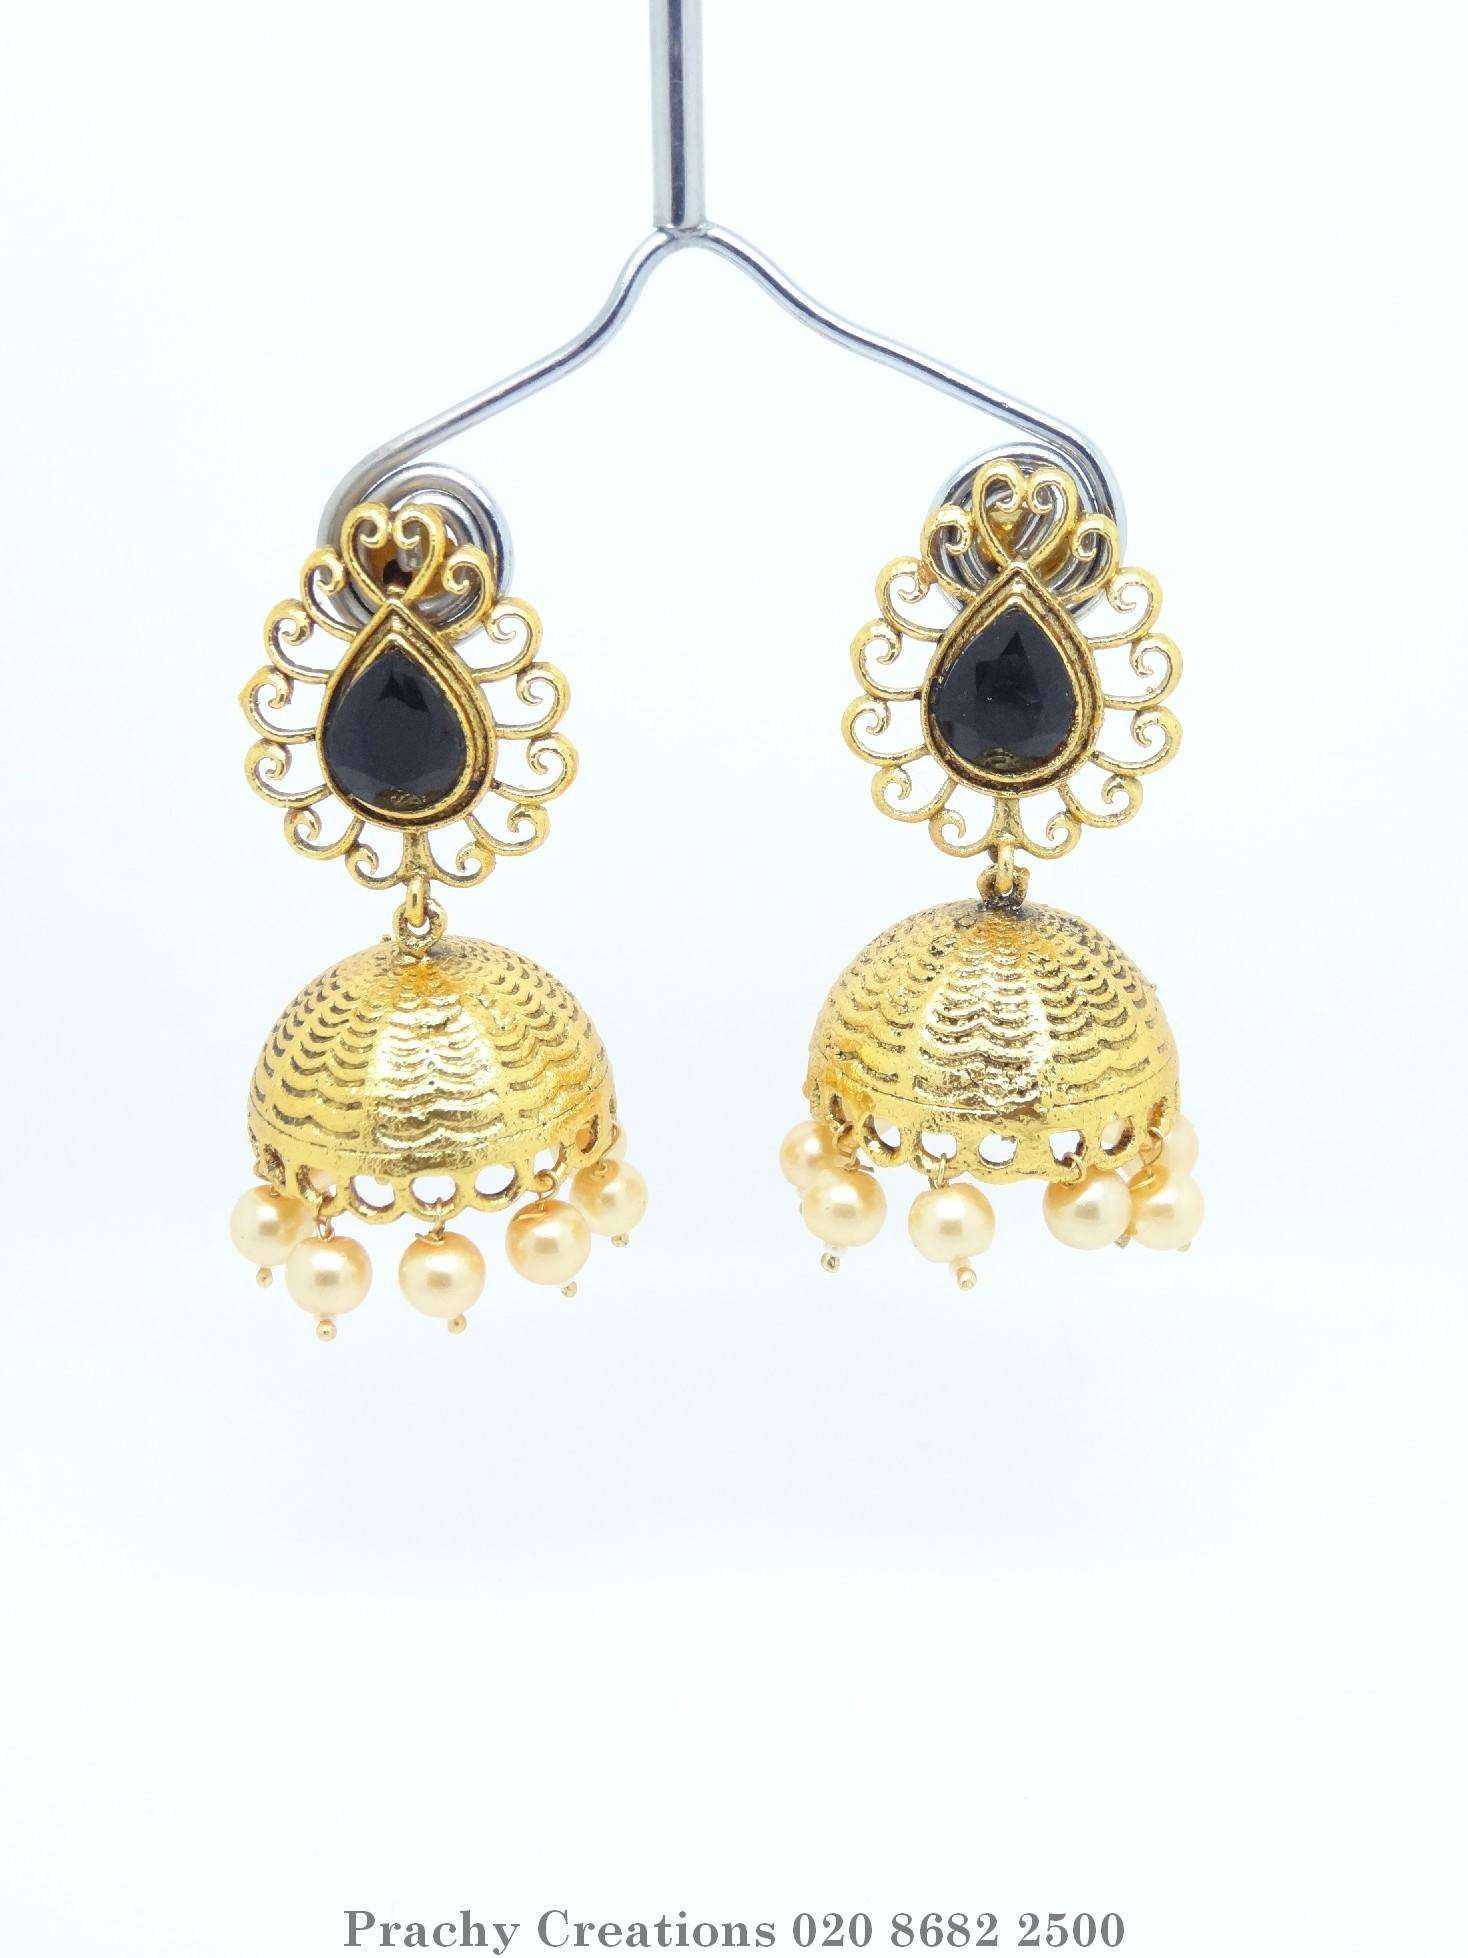 Soni 057 - Gold finish Indian earrings for bollywood parties T 0316 - Prachy Creations